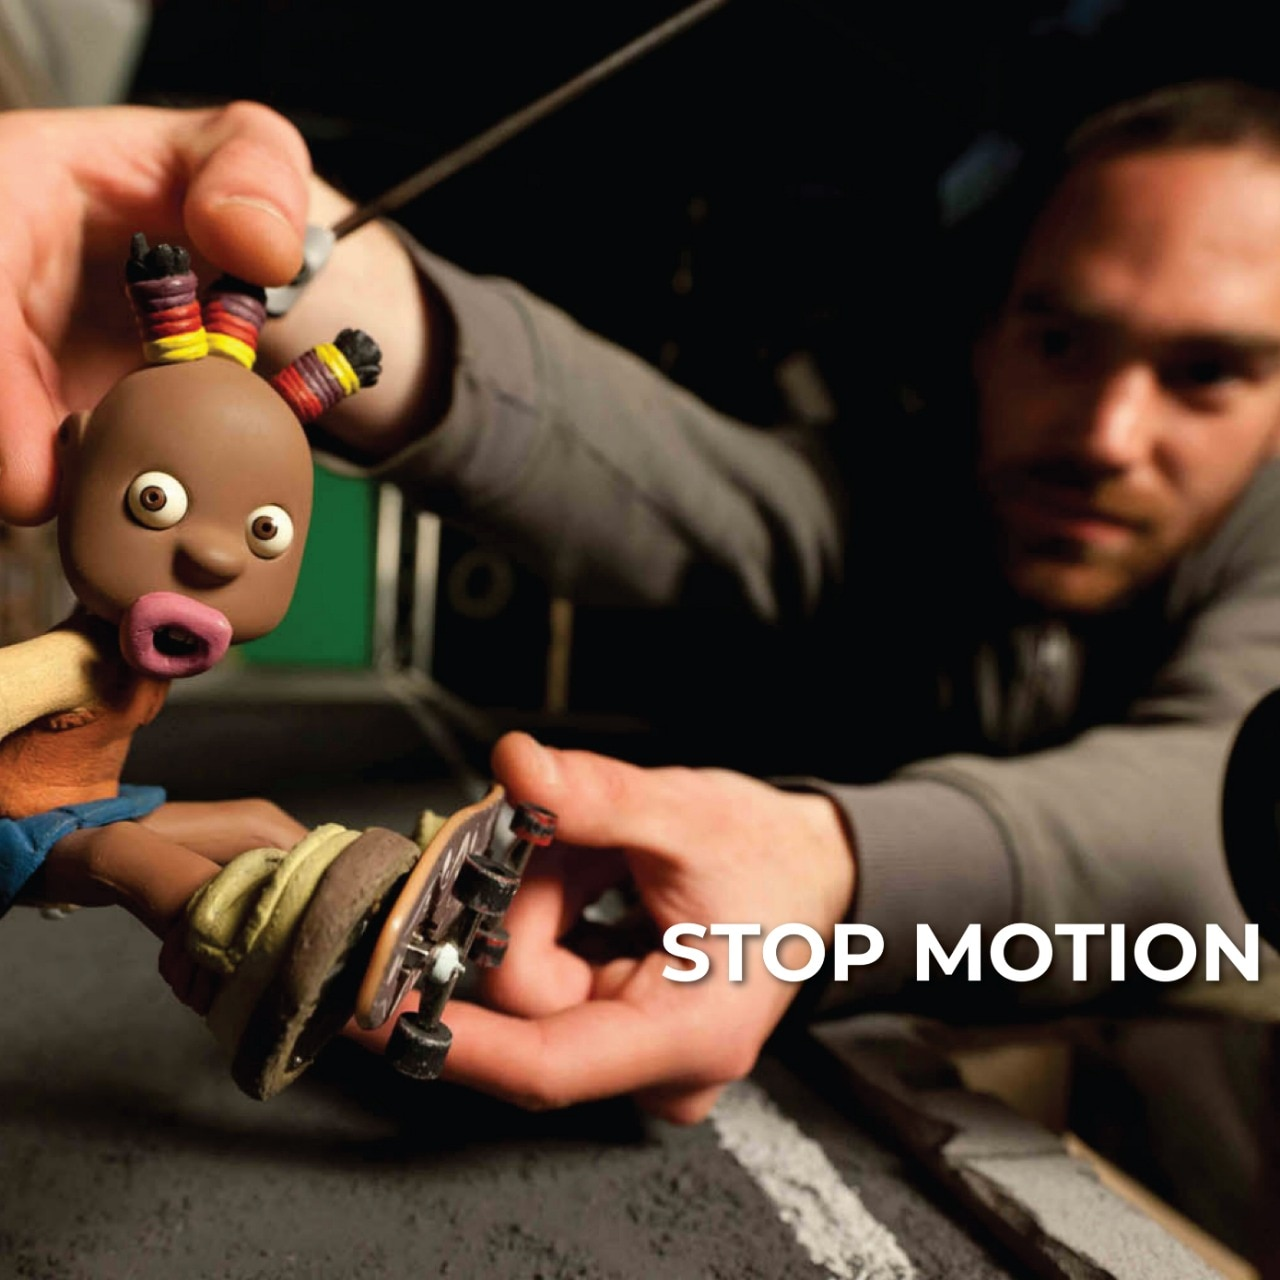 STOP- MOTION ANIMATION is anot